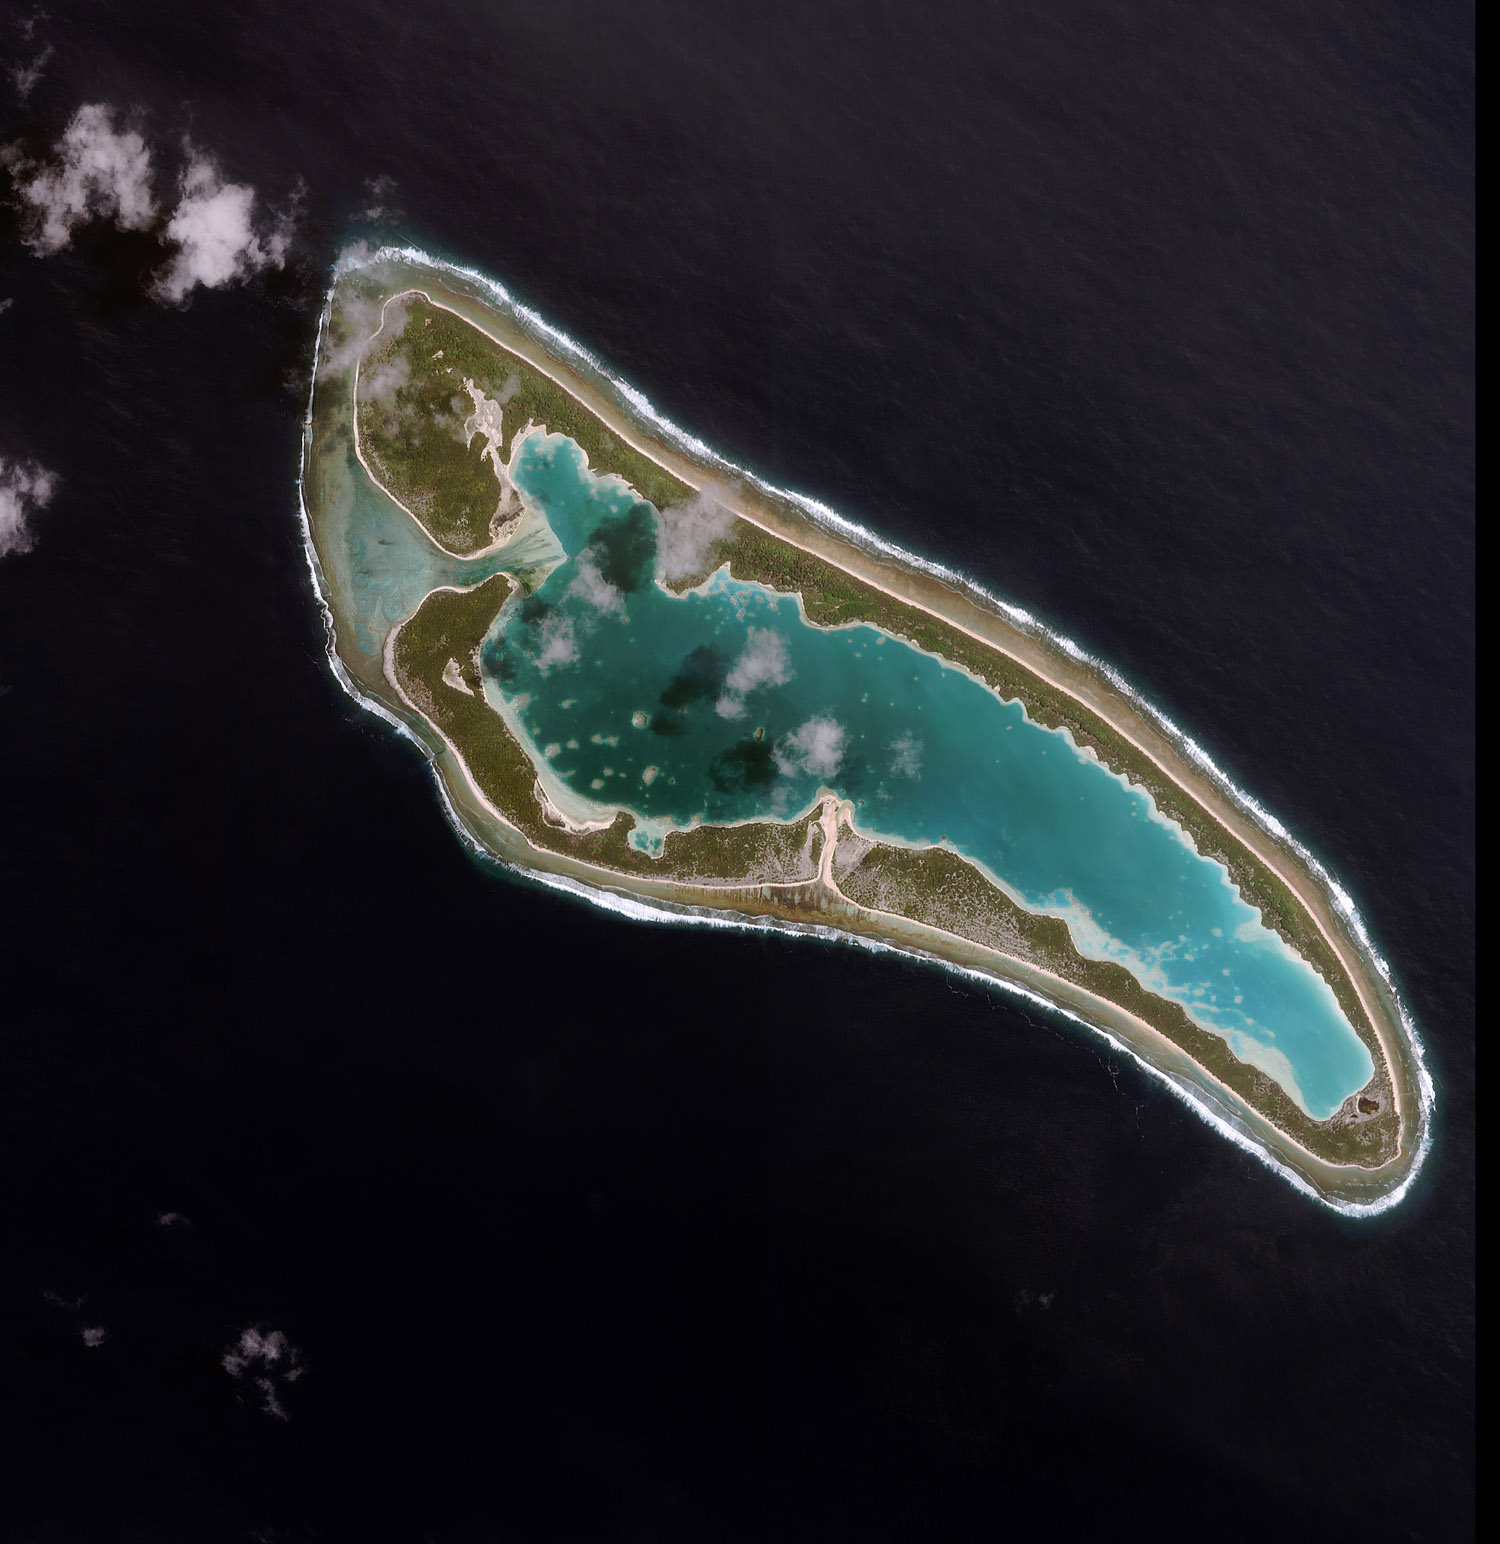 An image of Nikumaroro Island, where Amelia Earhart may have crashed, collected by Space Imaging's IKONOS satellite on April 16, 2001.